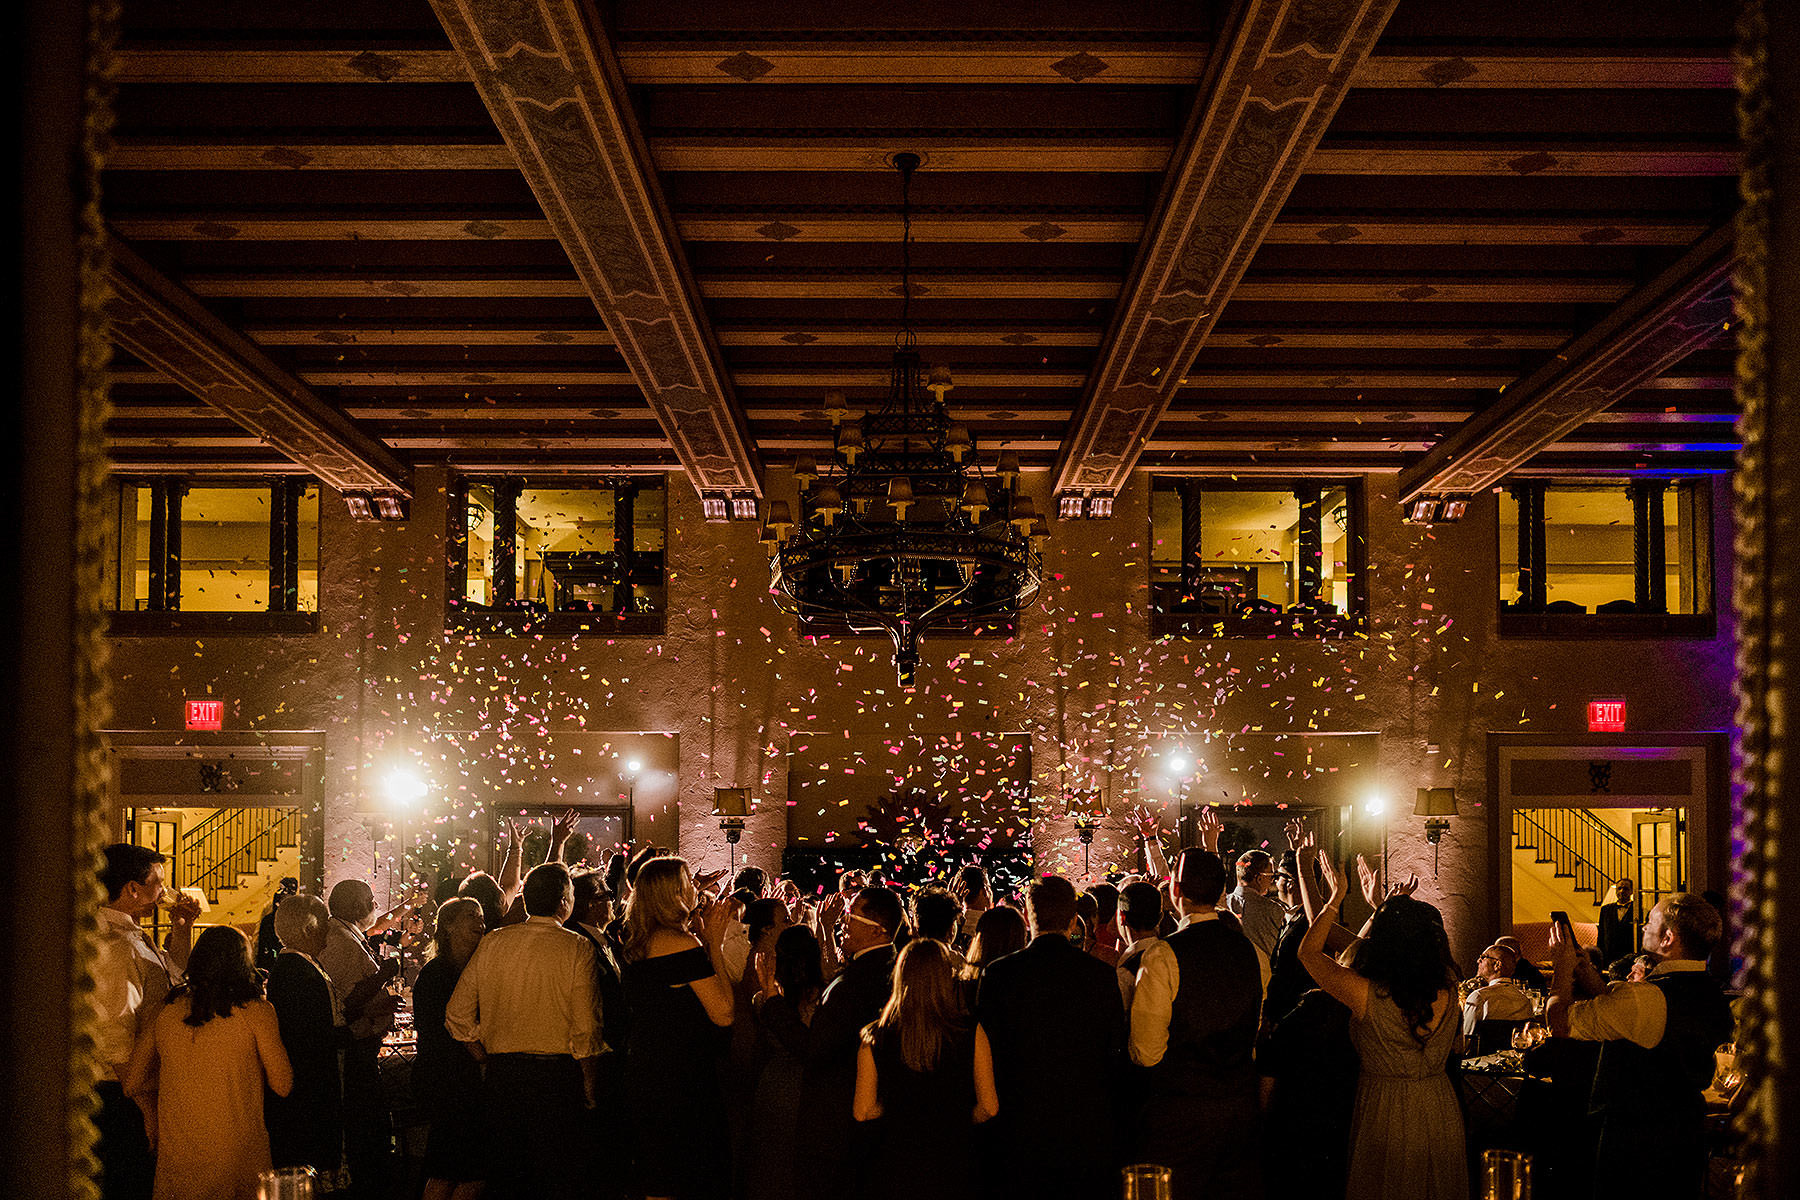 confetti falls from the ceiling during reception at congressional country club wedding by Washington DC Wedding Photographer Adam Mason